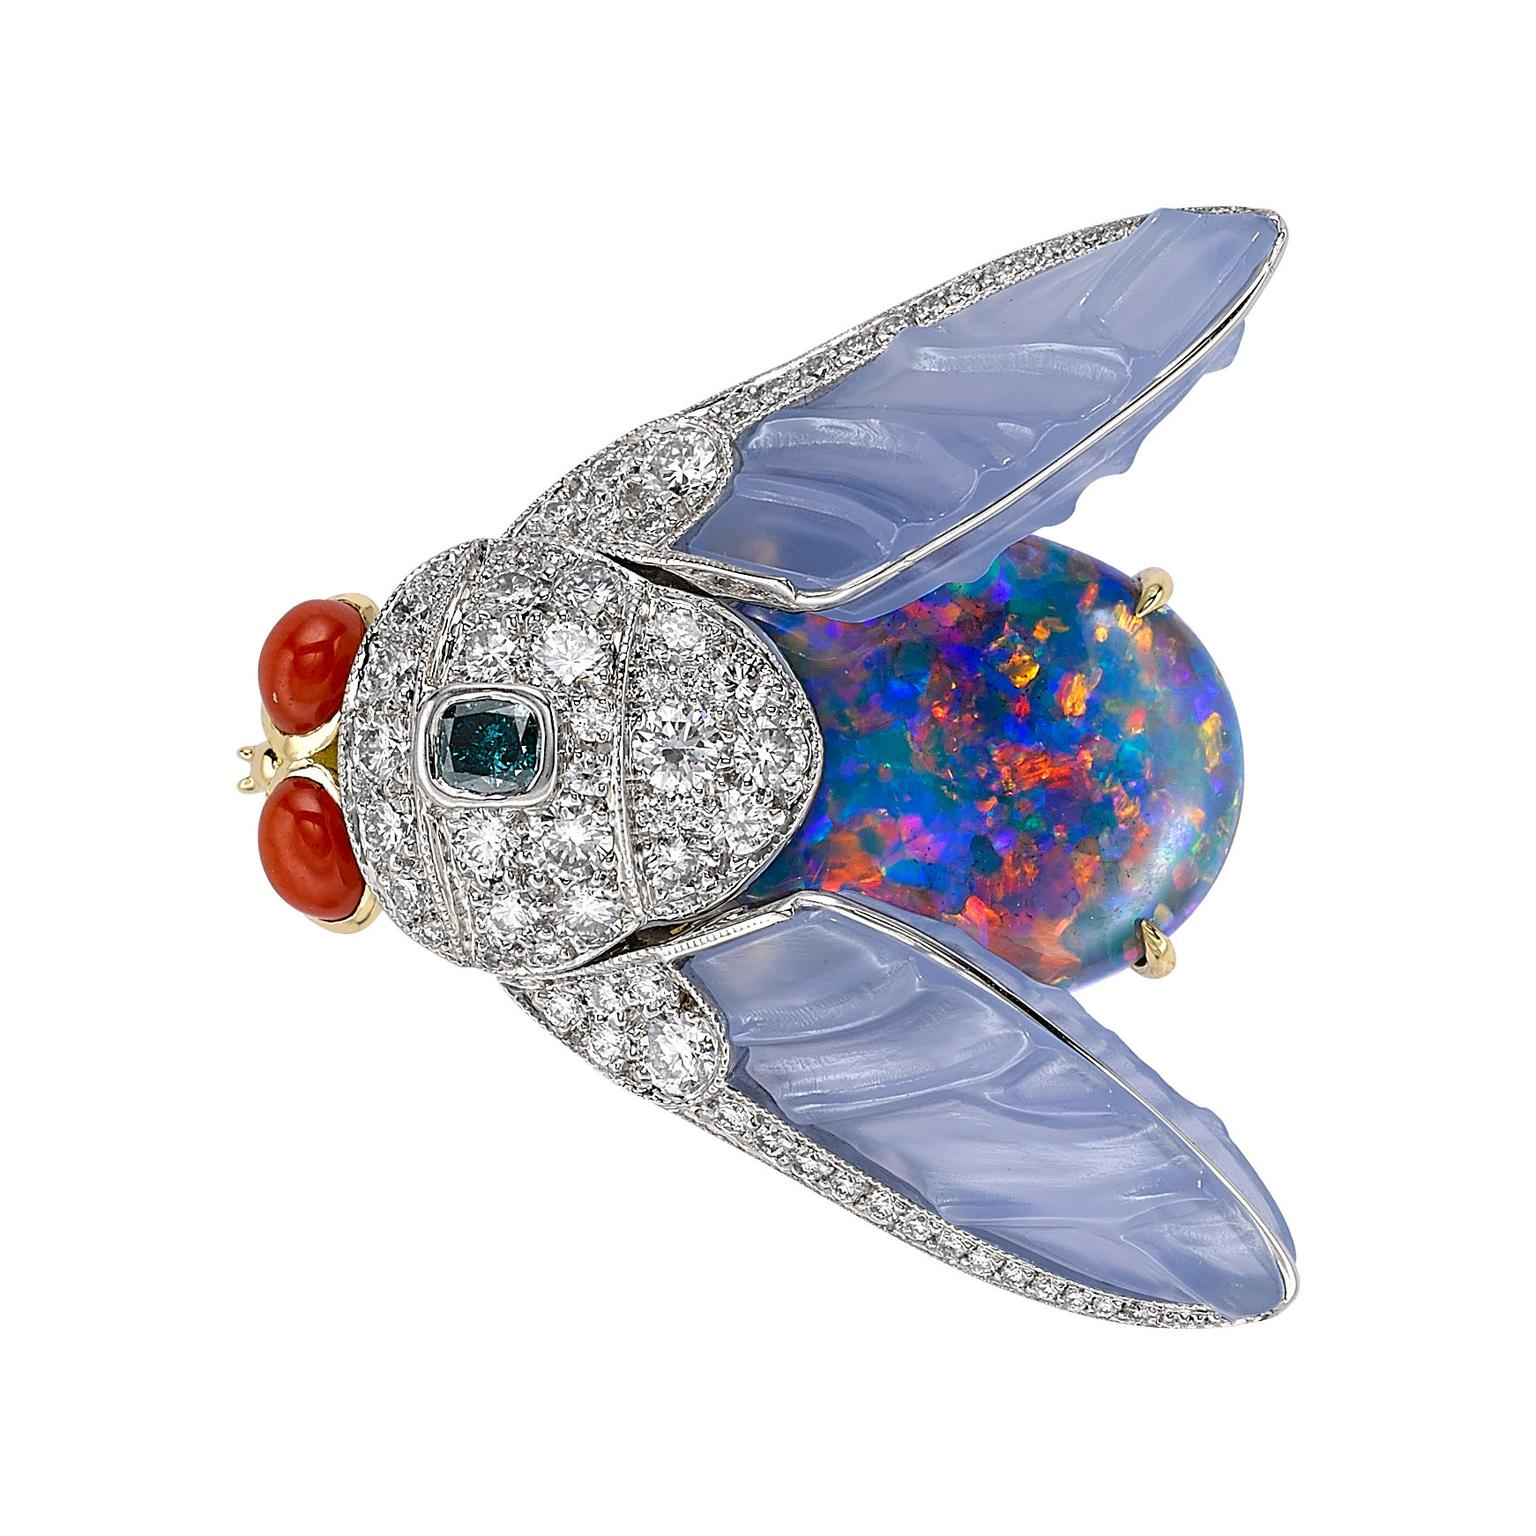 George Pragnell Summer Bug brooch